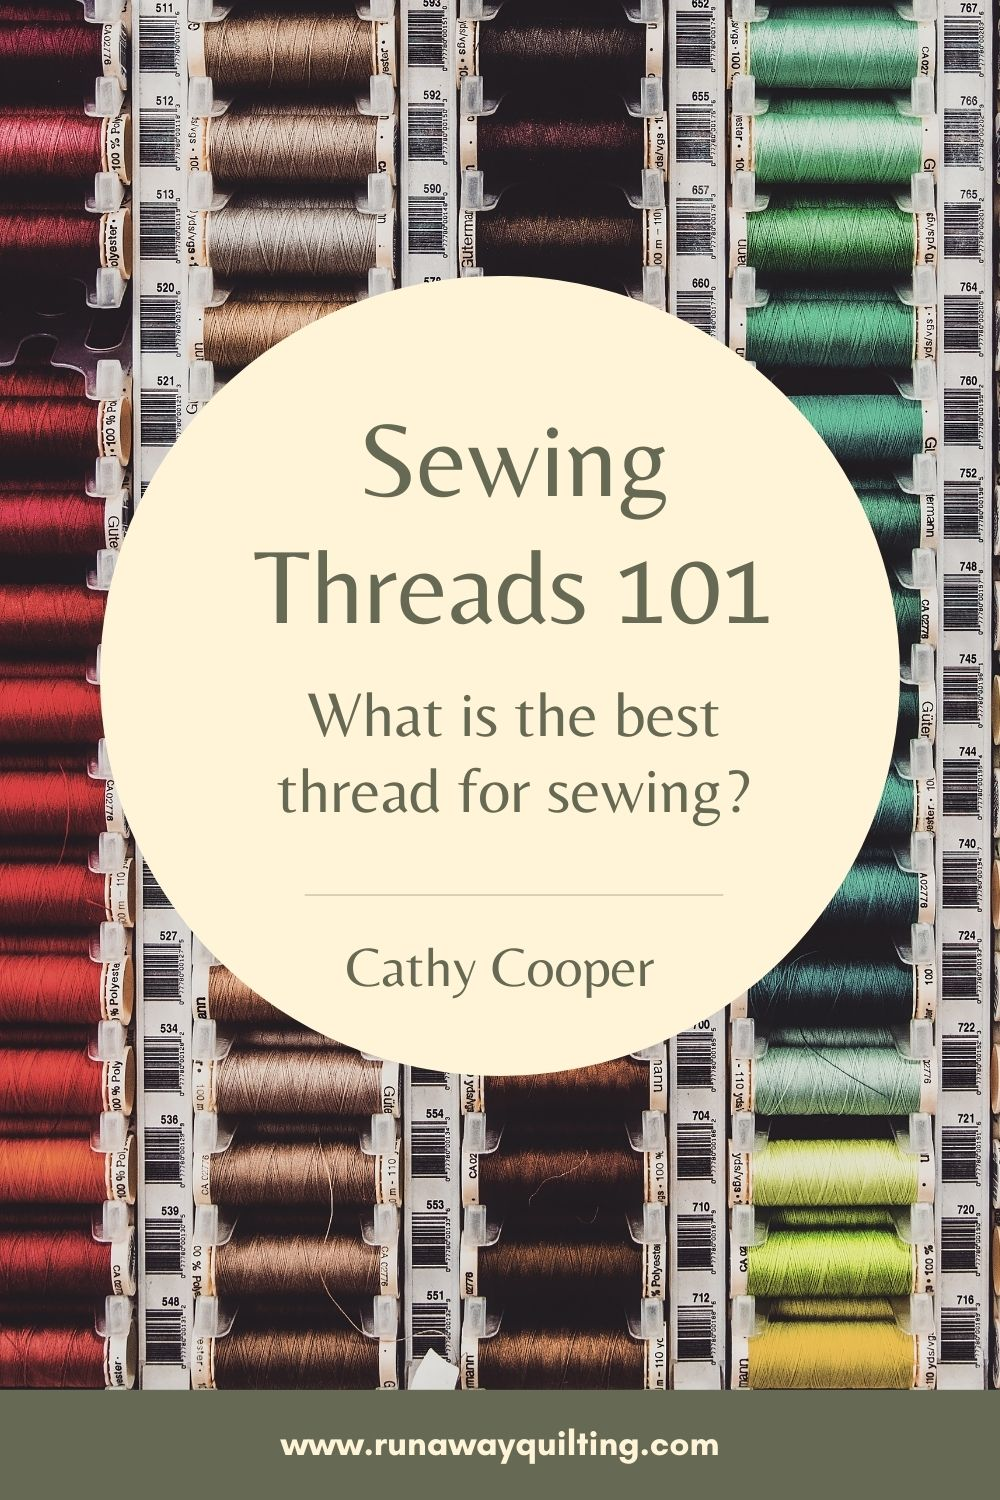 Sewing Threads 101